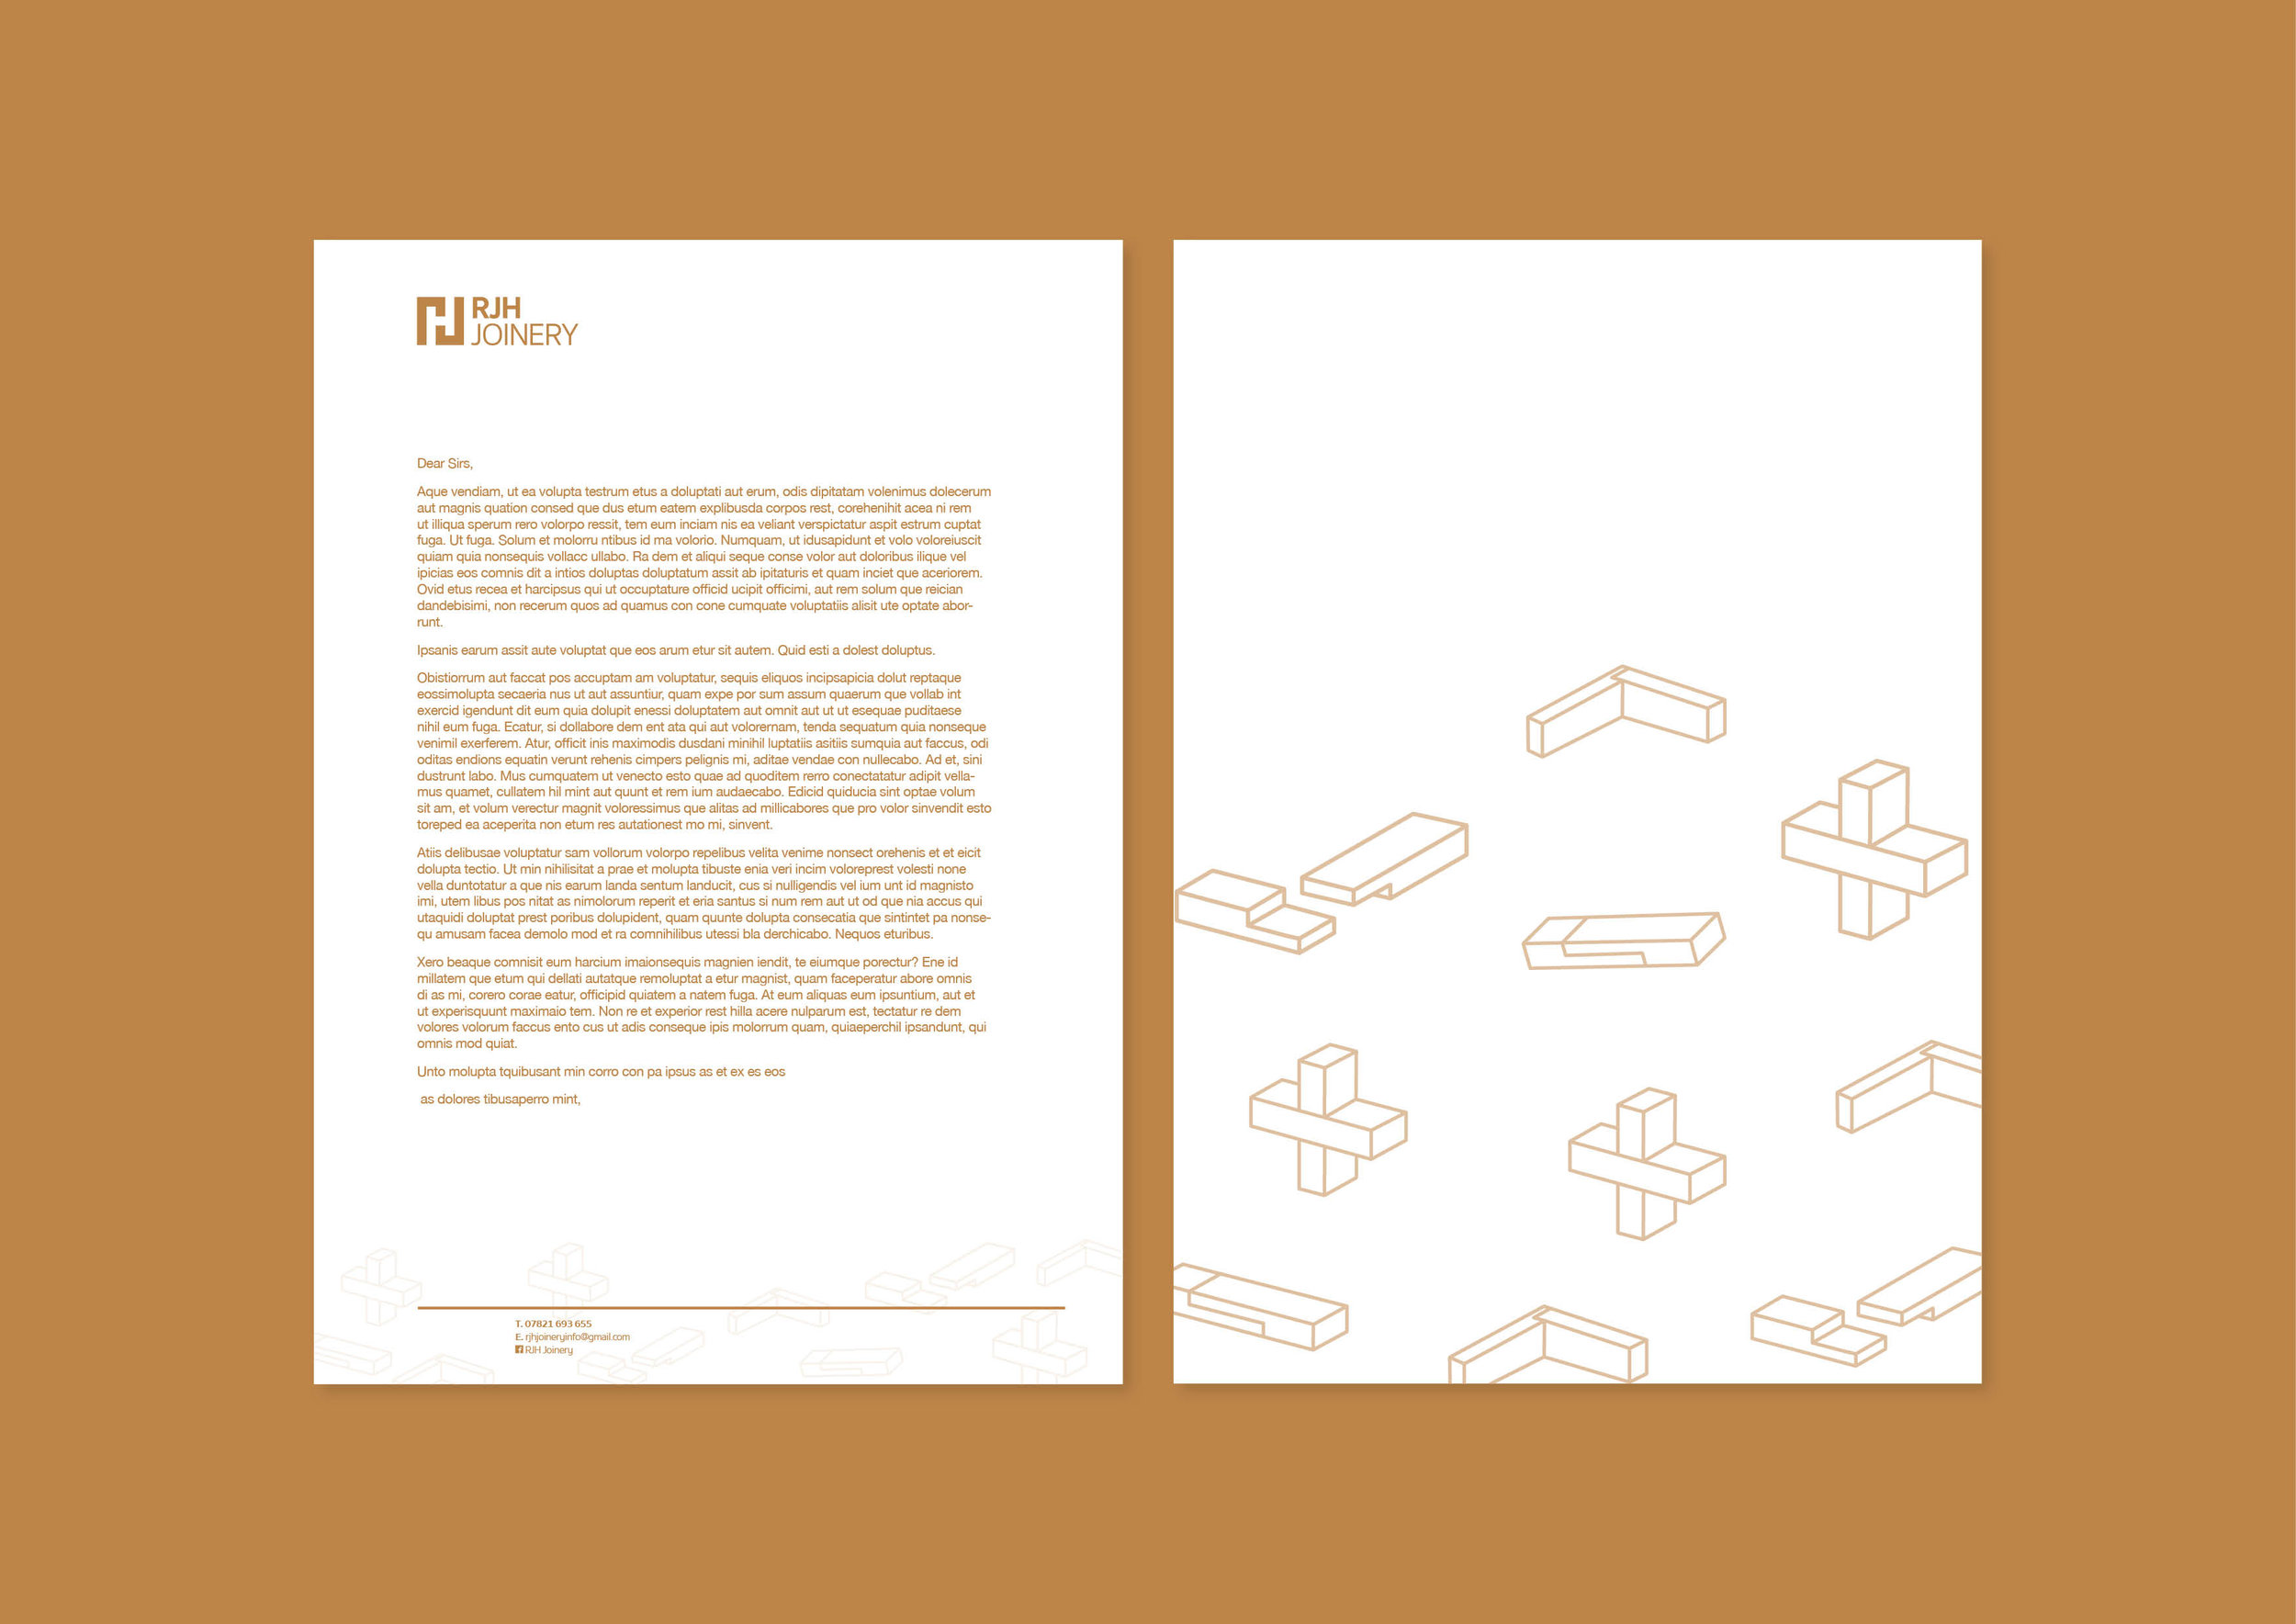 RJH Joinery - Letterheads - Branding Development - Graphic Design Sheffield